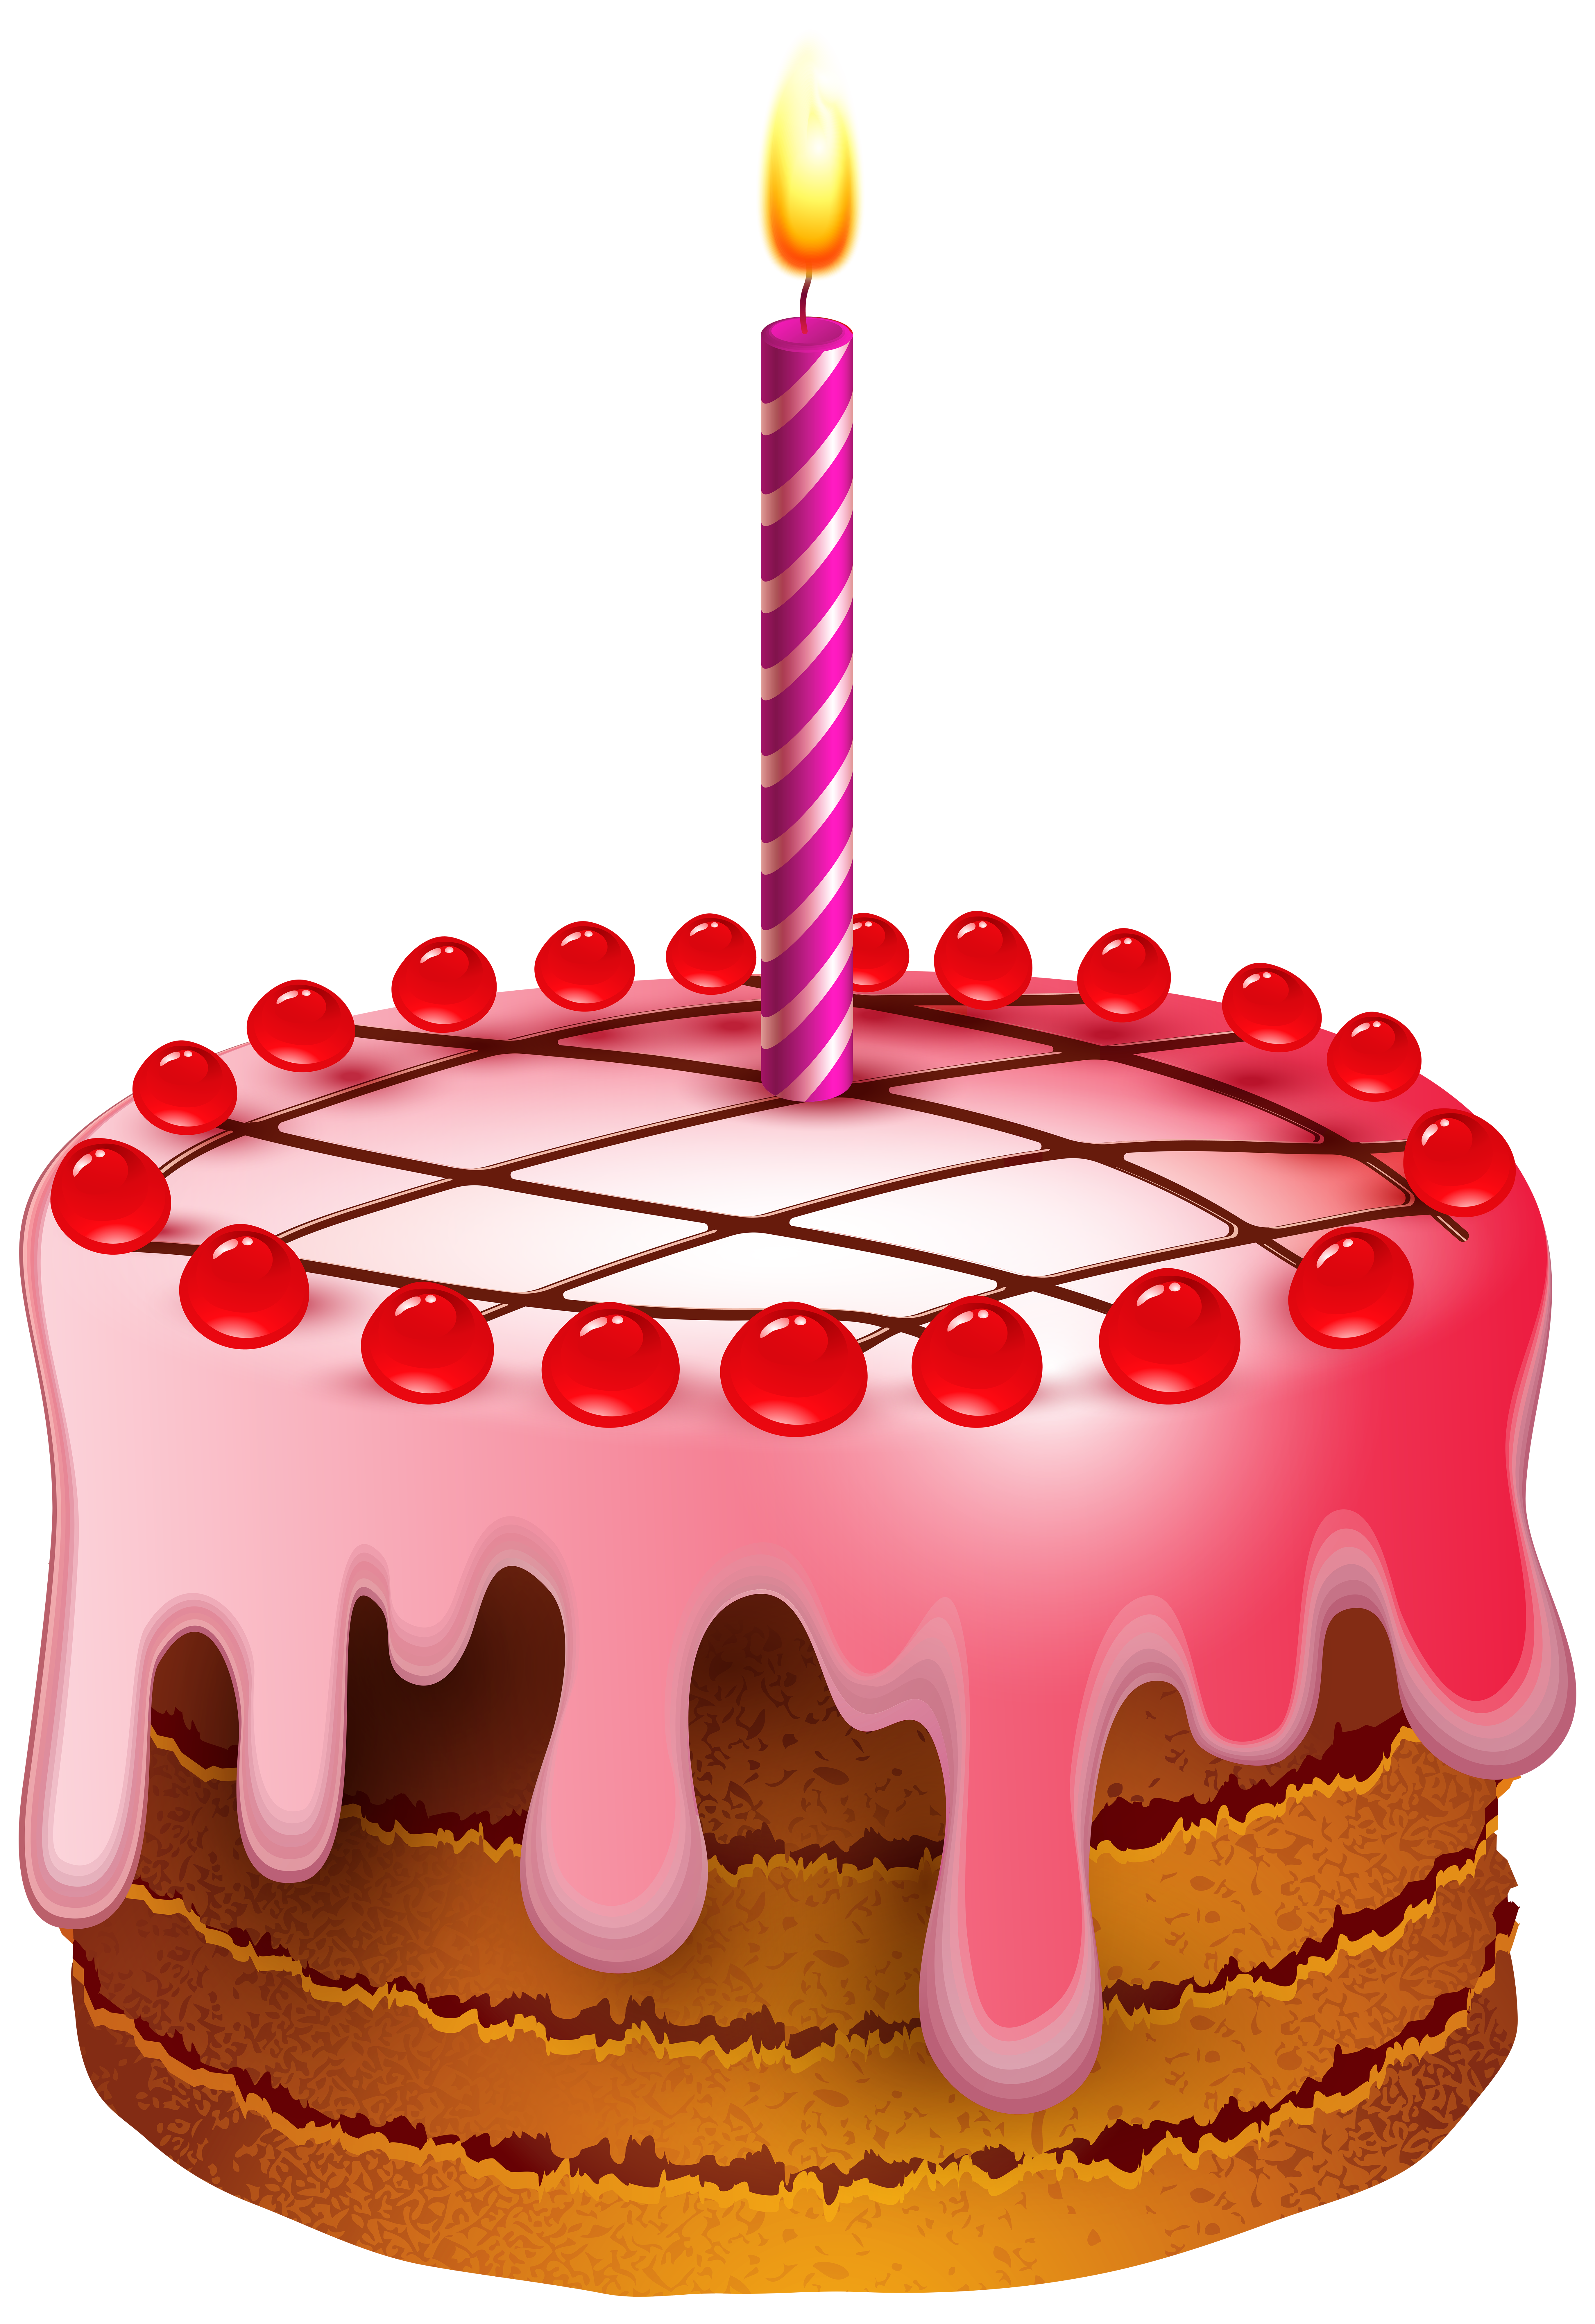 Birthday Cake with Candle Transparent Clip Art Image.